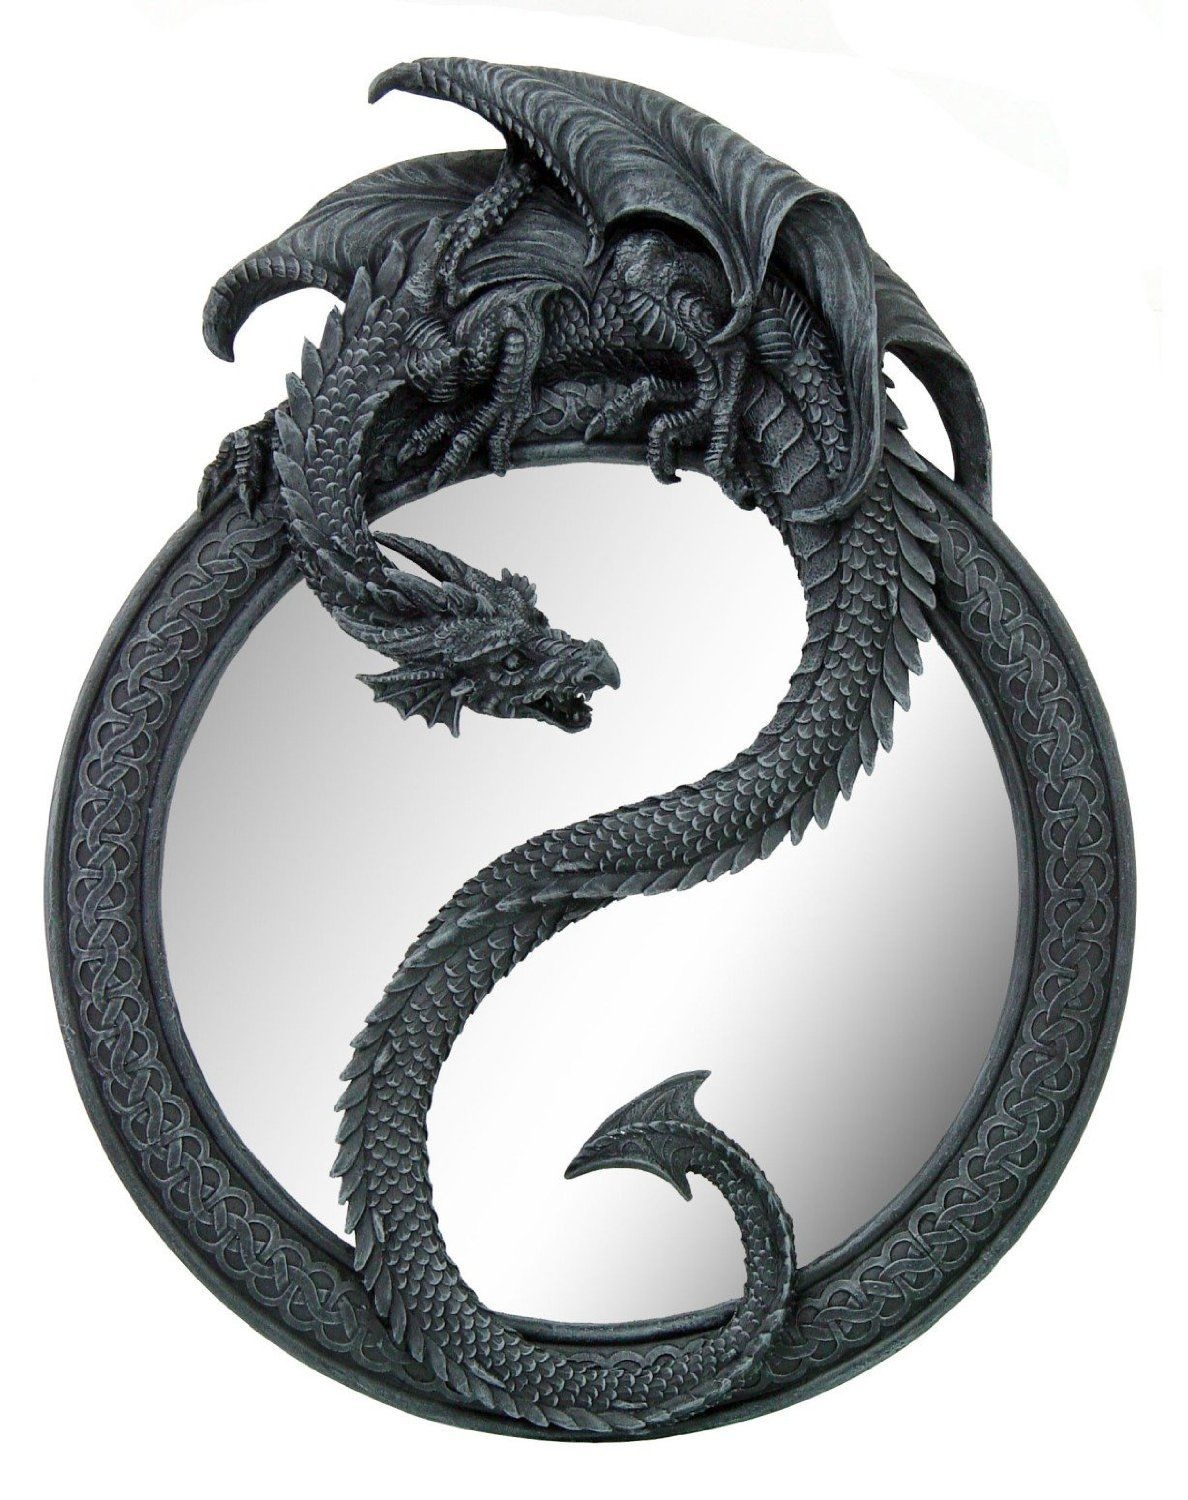 Medieval Dragon Wall Mirror Home Decor Decorative.